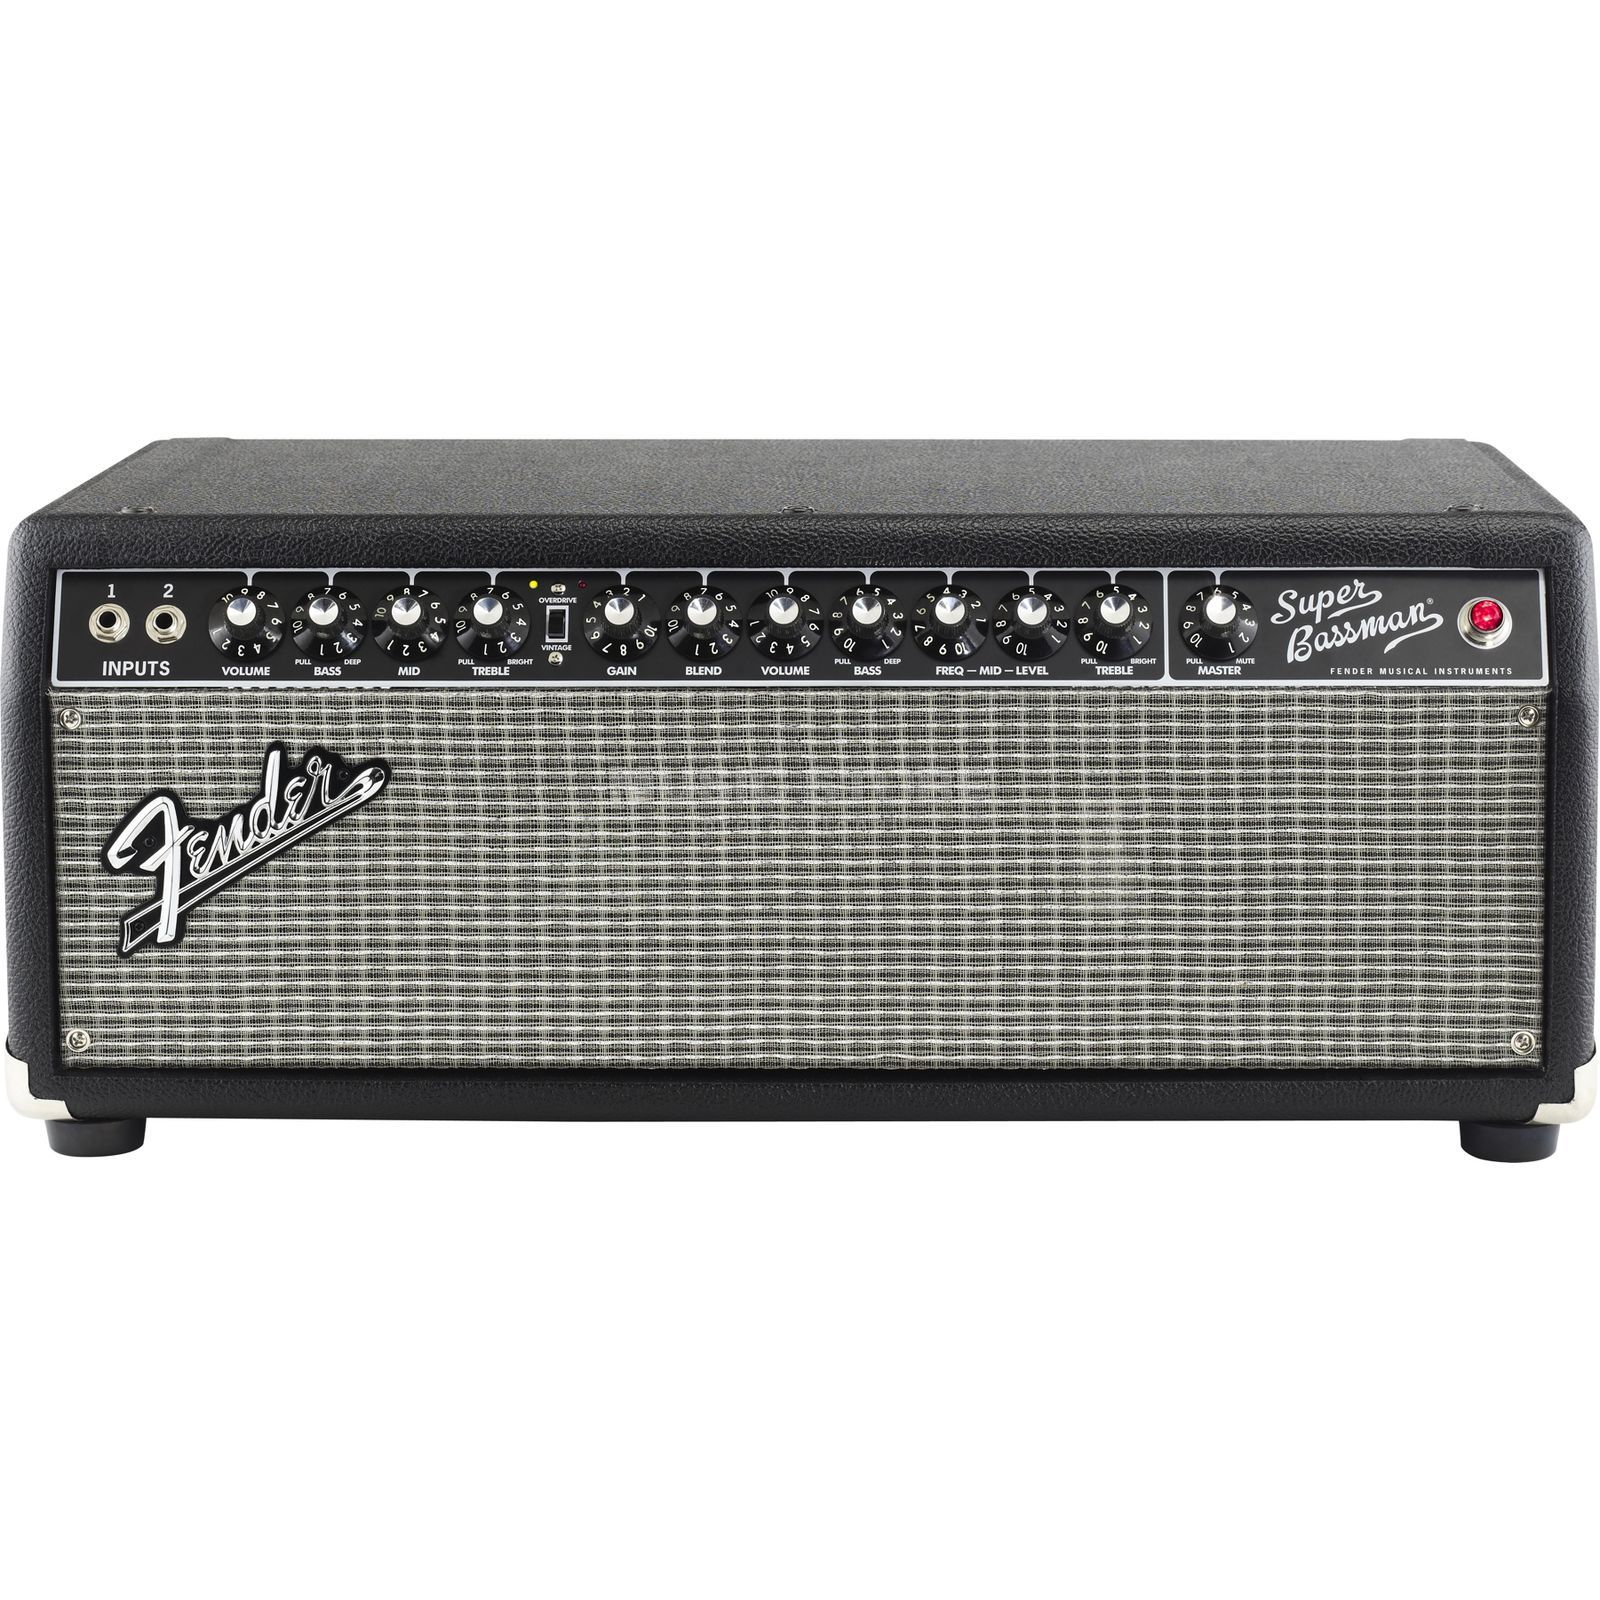 Fender Super basman Head zwart Productafbeelding